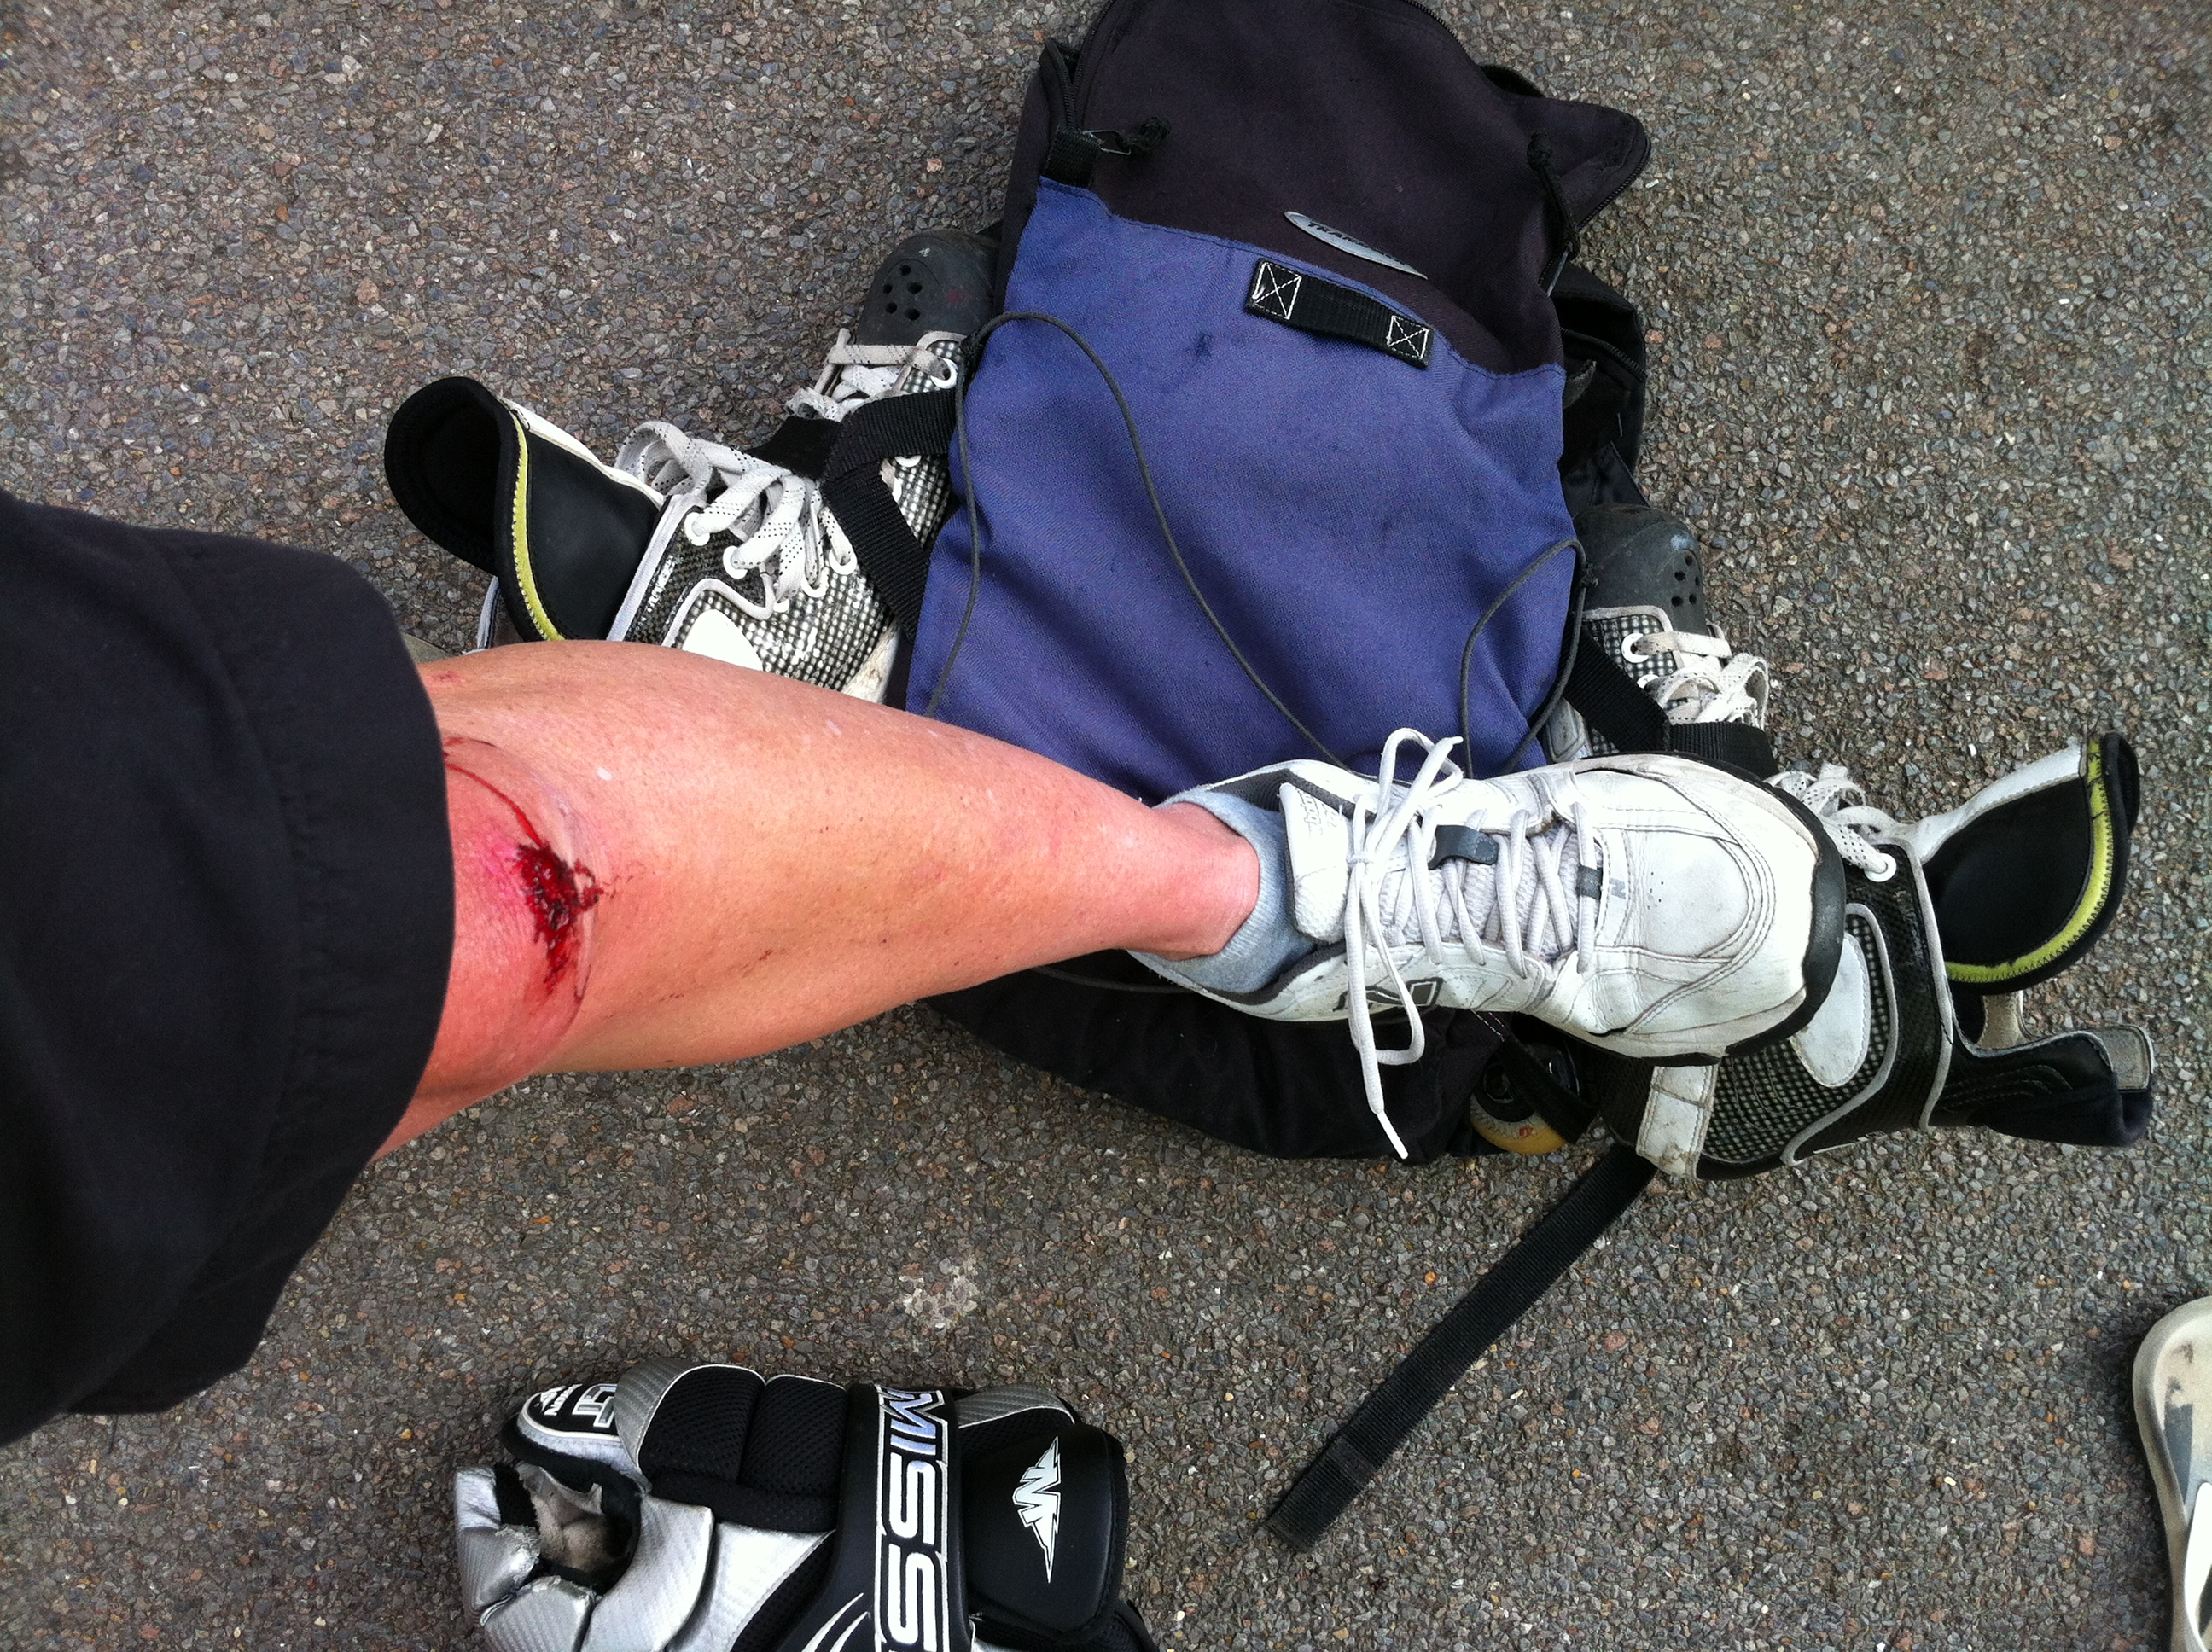 Roadrash from hockey